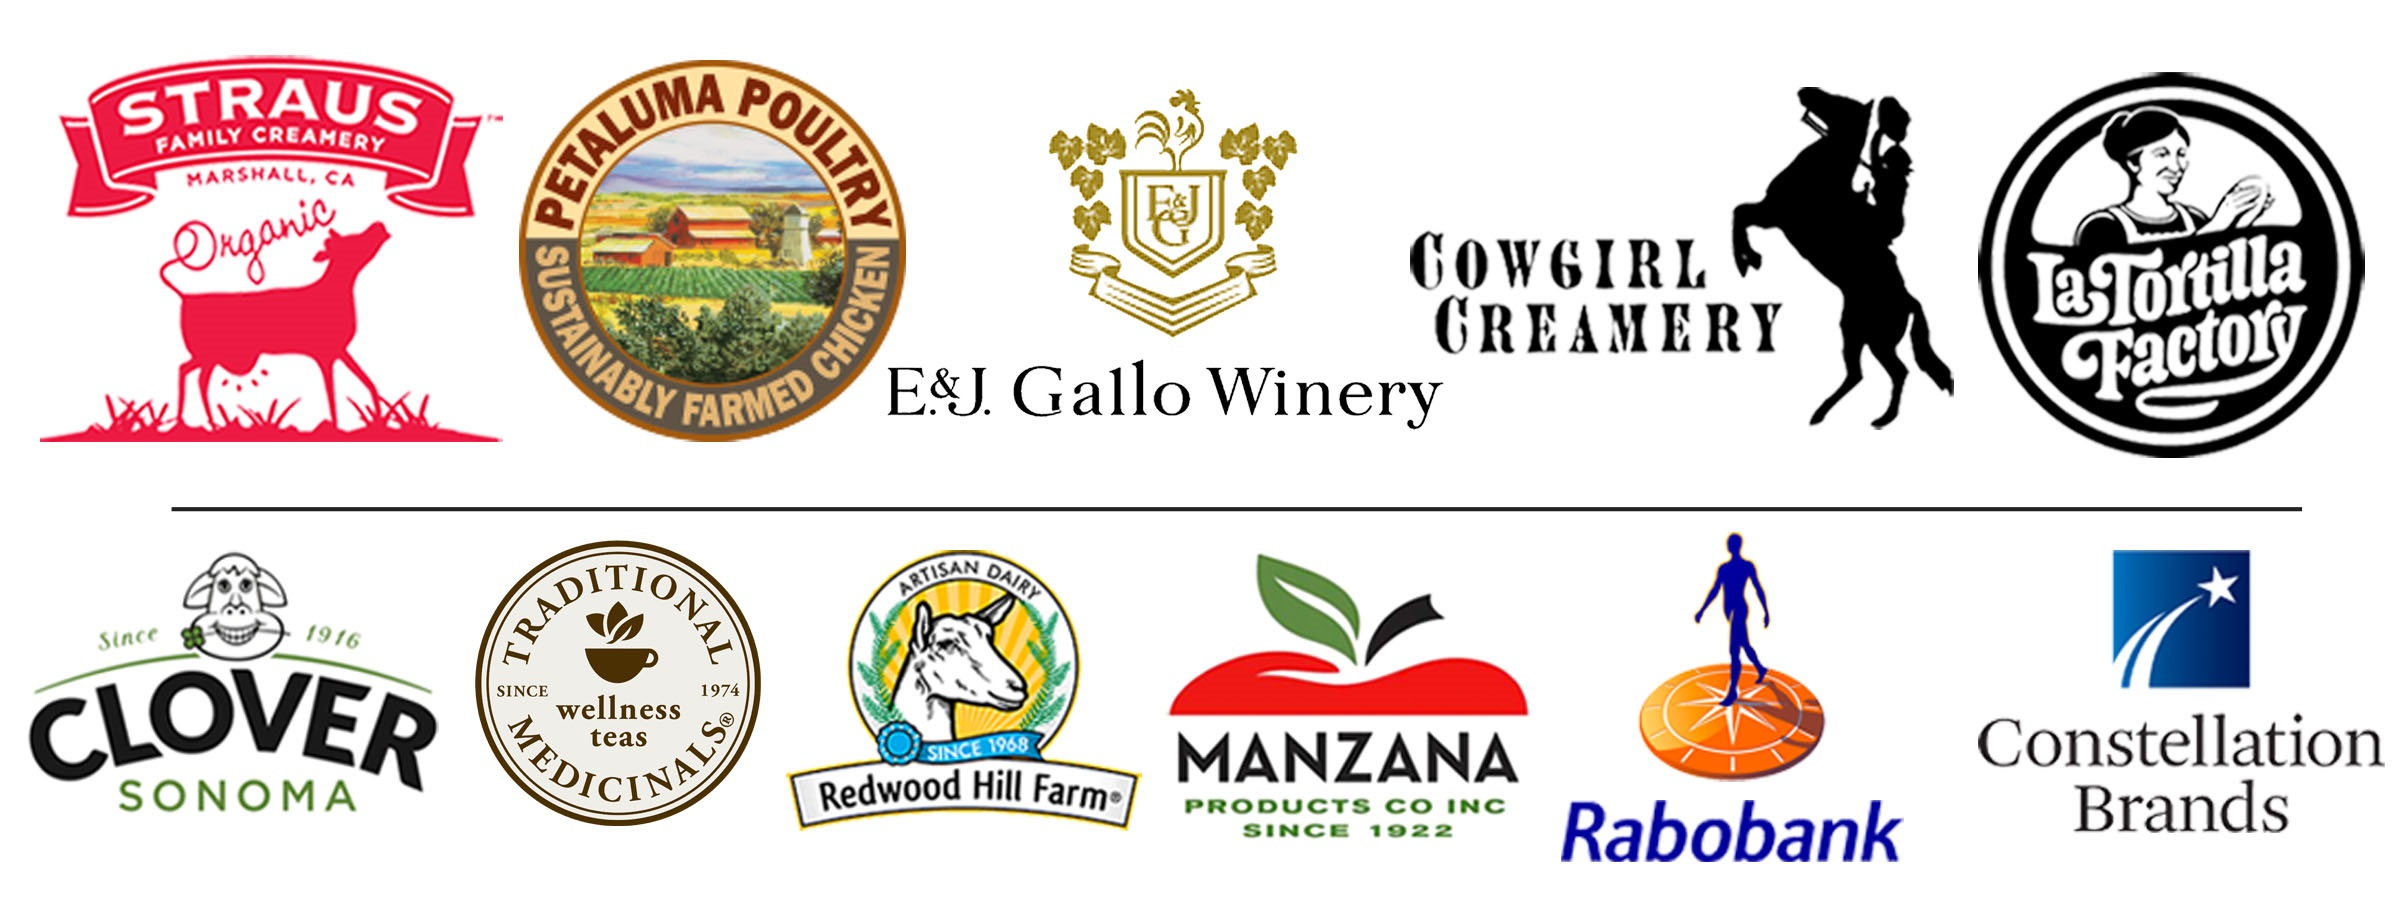 Many Thanks To Our 2018 Event Sponsors!